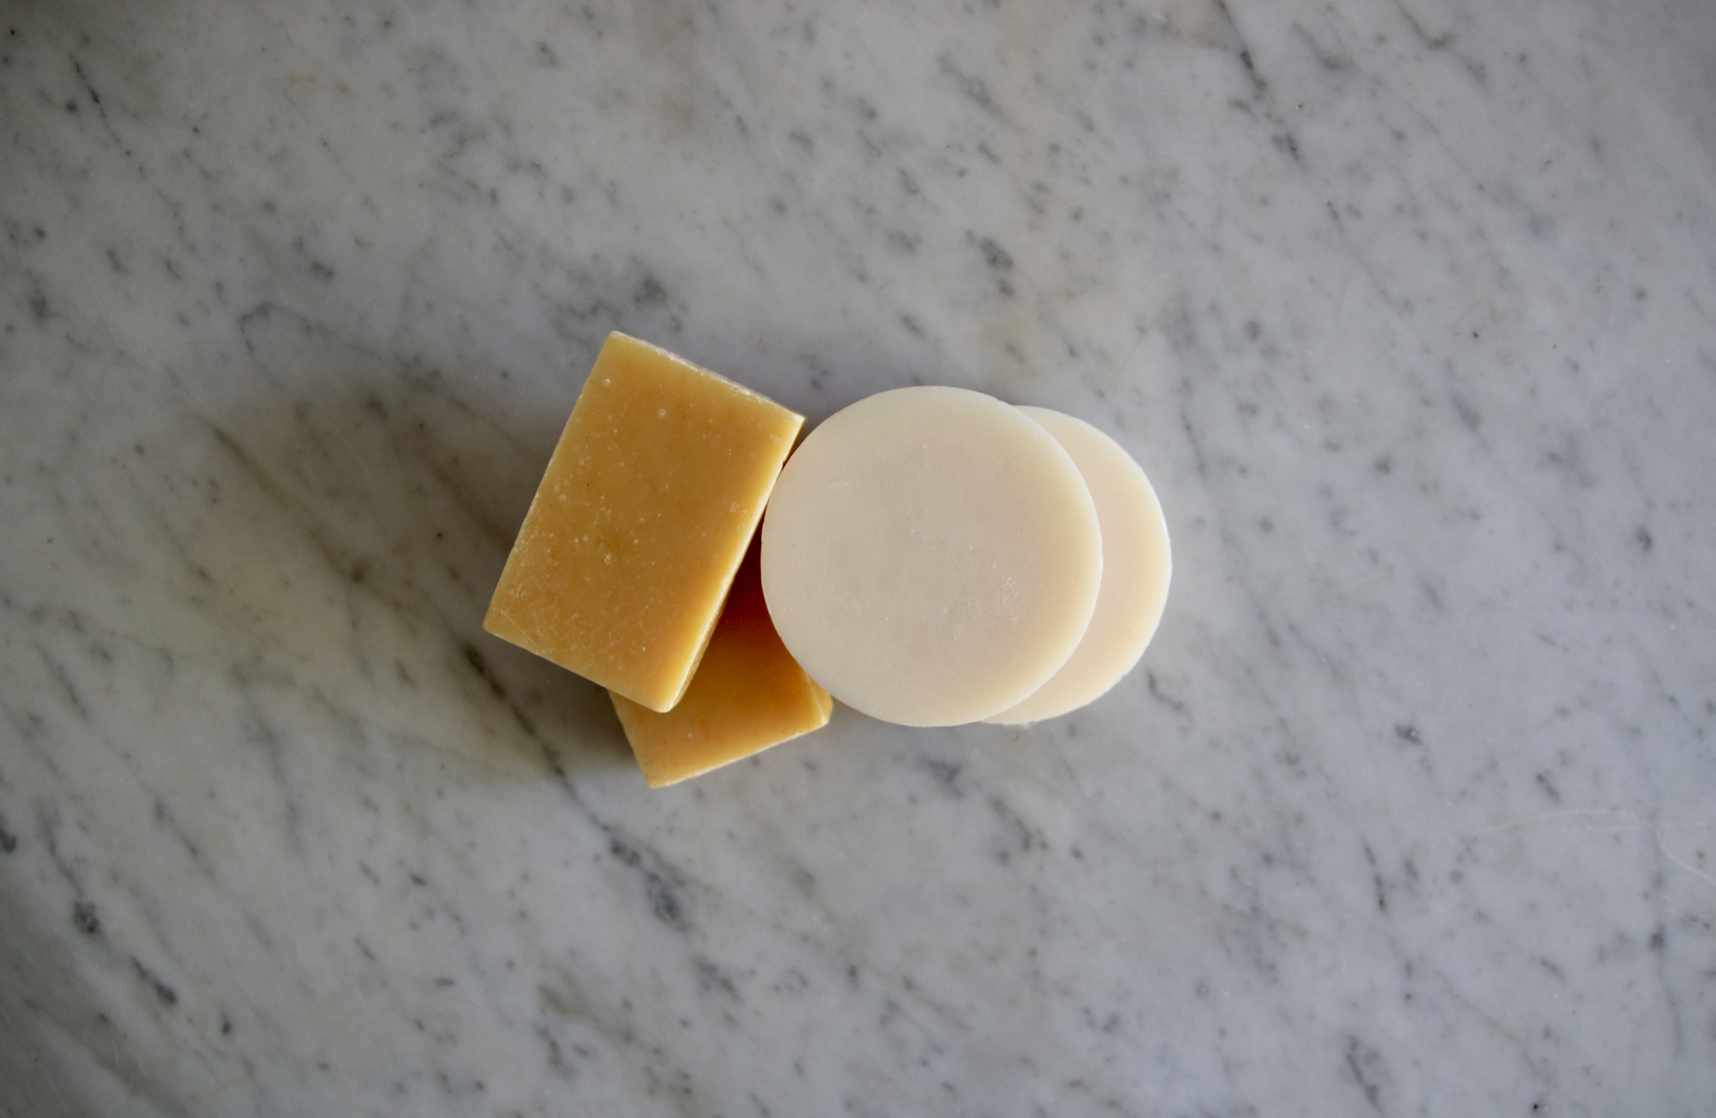 Switch to bar soap for a zero waste bathroom